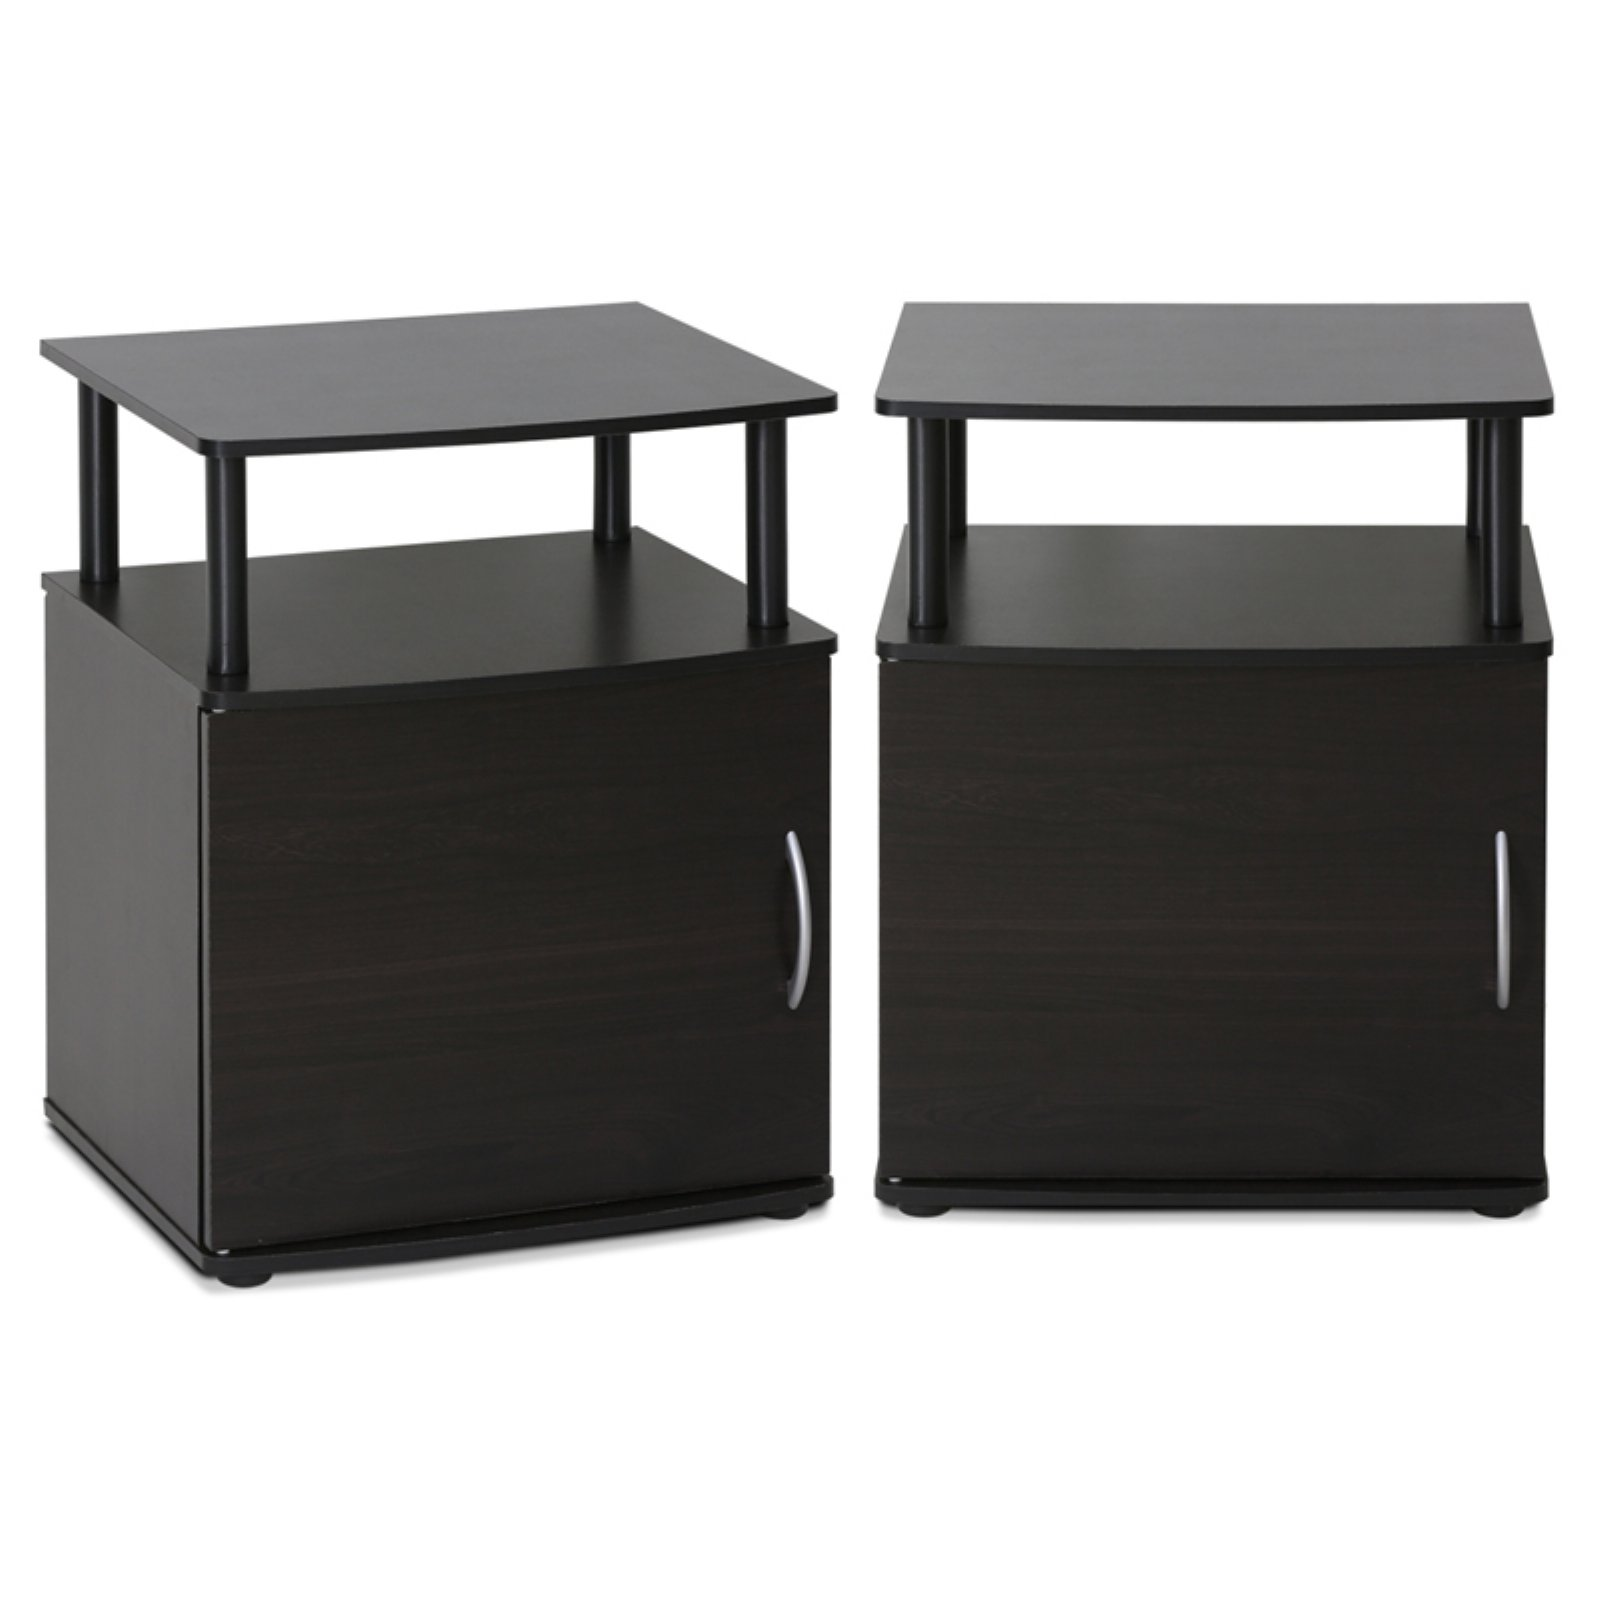 Furinno JAYA Utility Design End Table, Set of 2